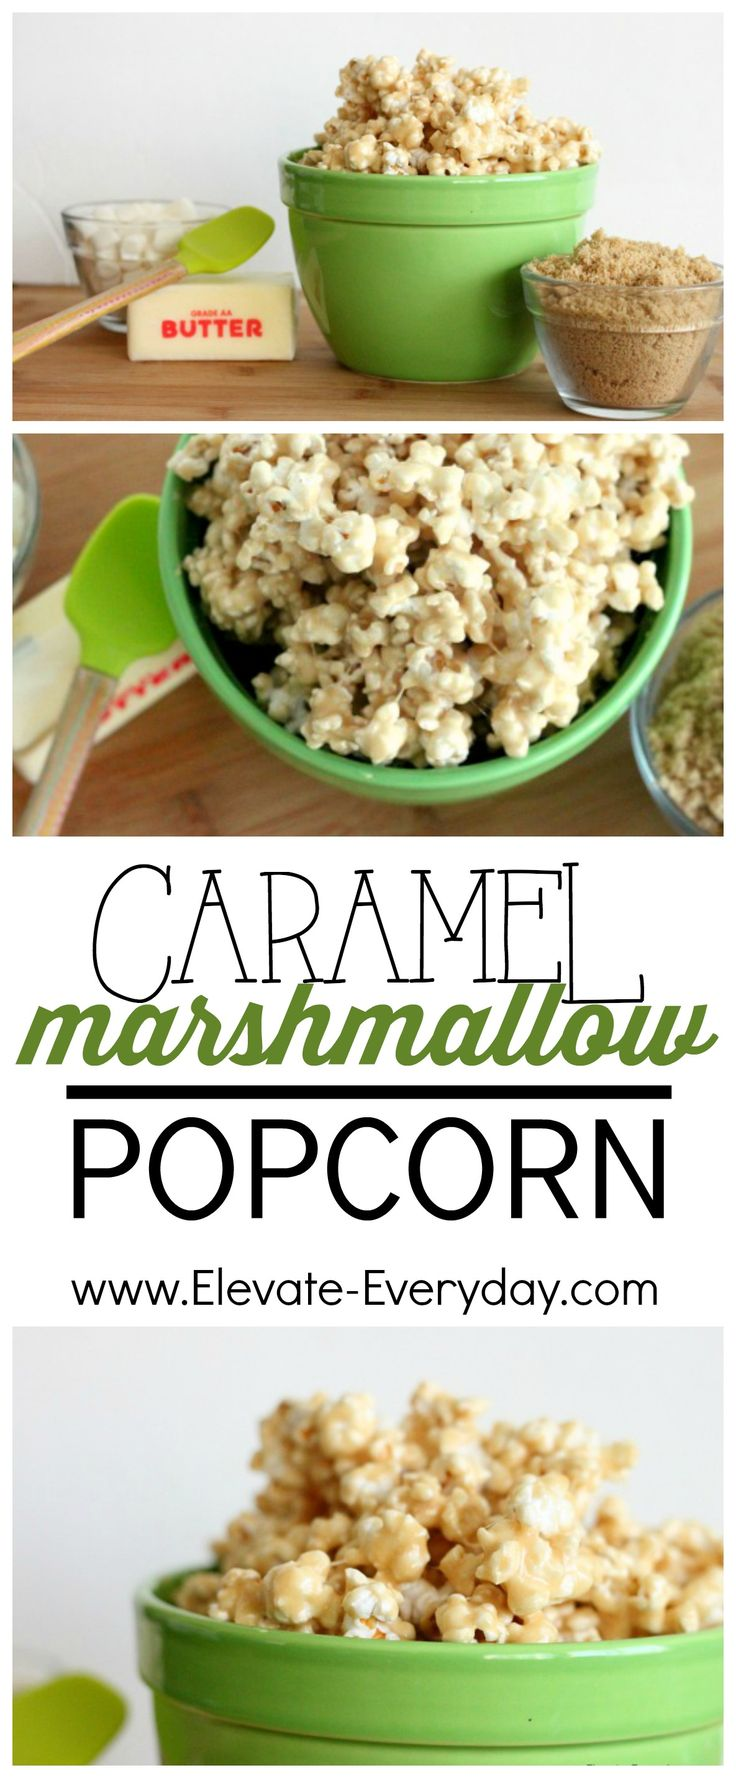 This Caramel Marshmallow Popcorn is seriously so easy and gooey and amazing.  Must make!